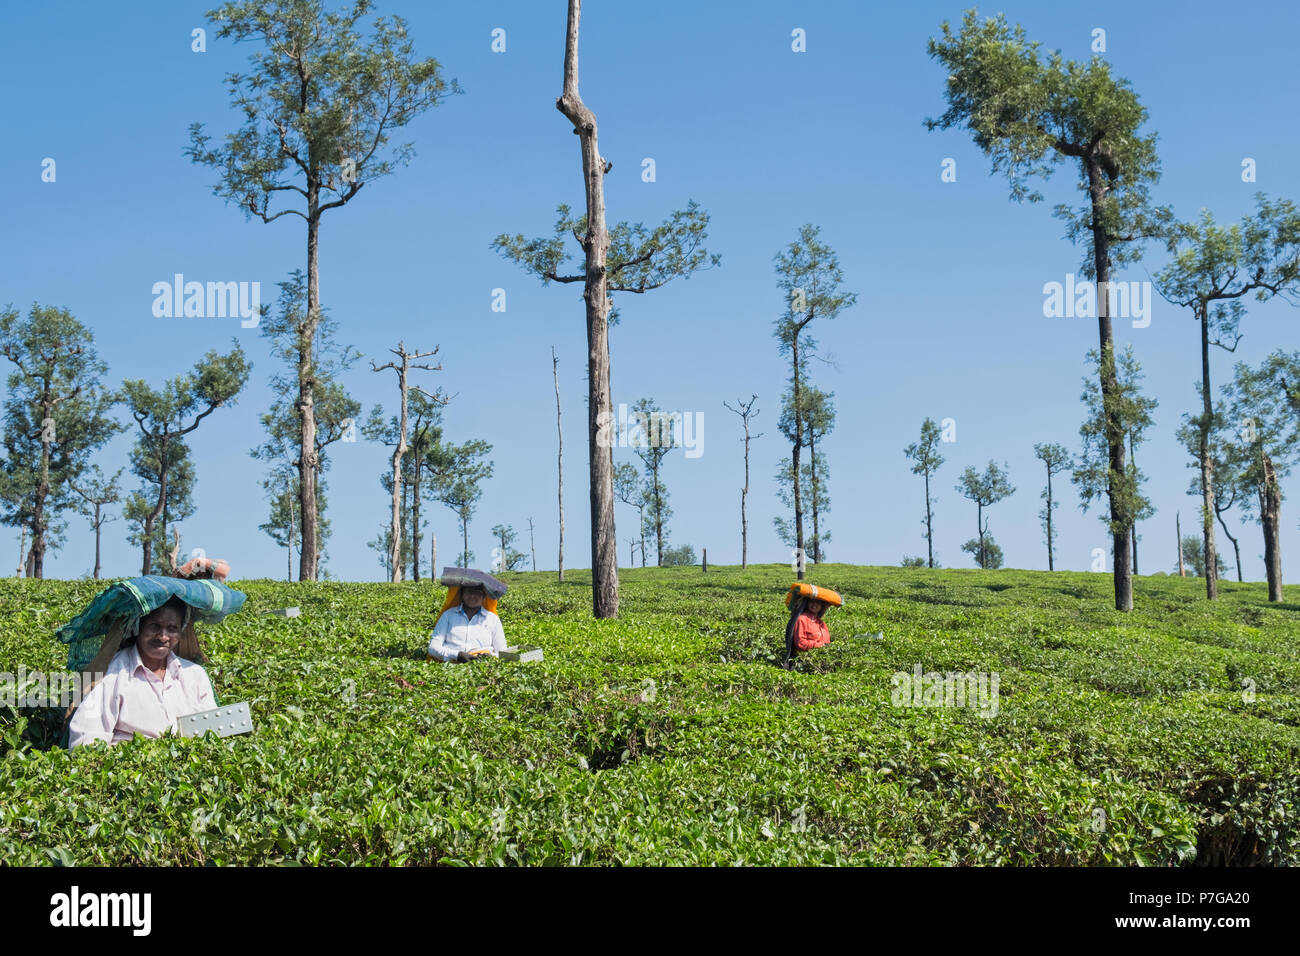 Valparai, India - March 8, 2018: Estate workers clipping tea bushes at an early stage in growth to increase the crop yield - Stock Image